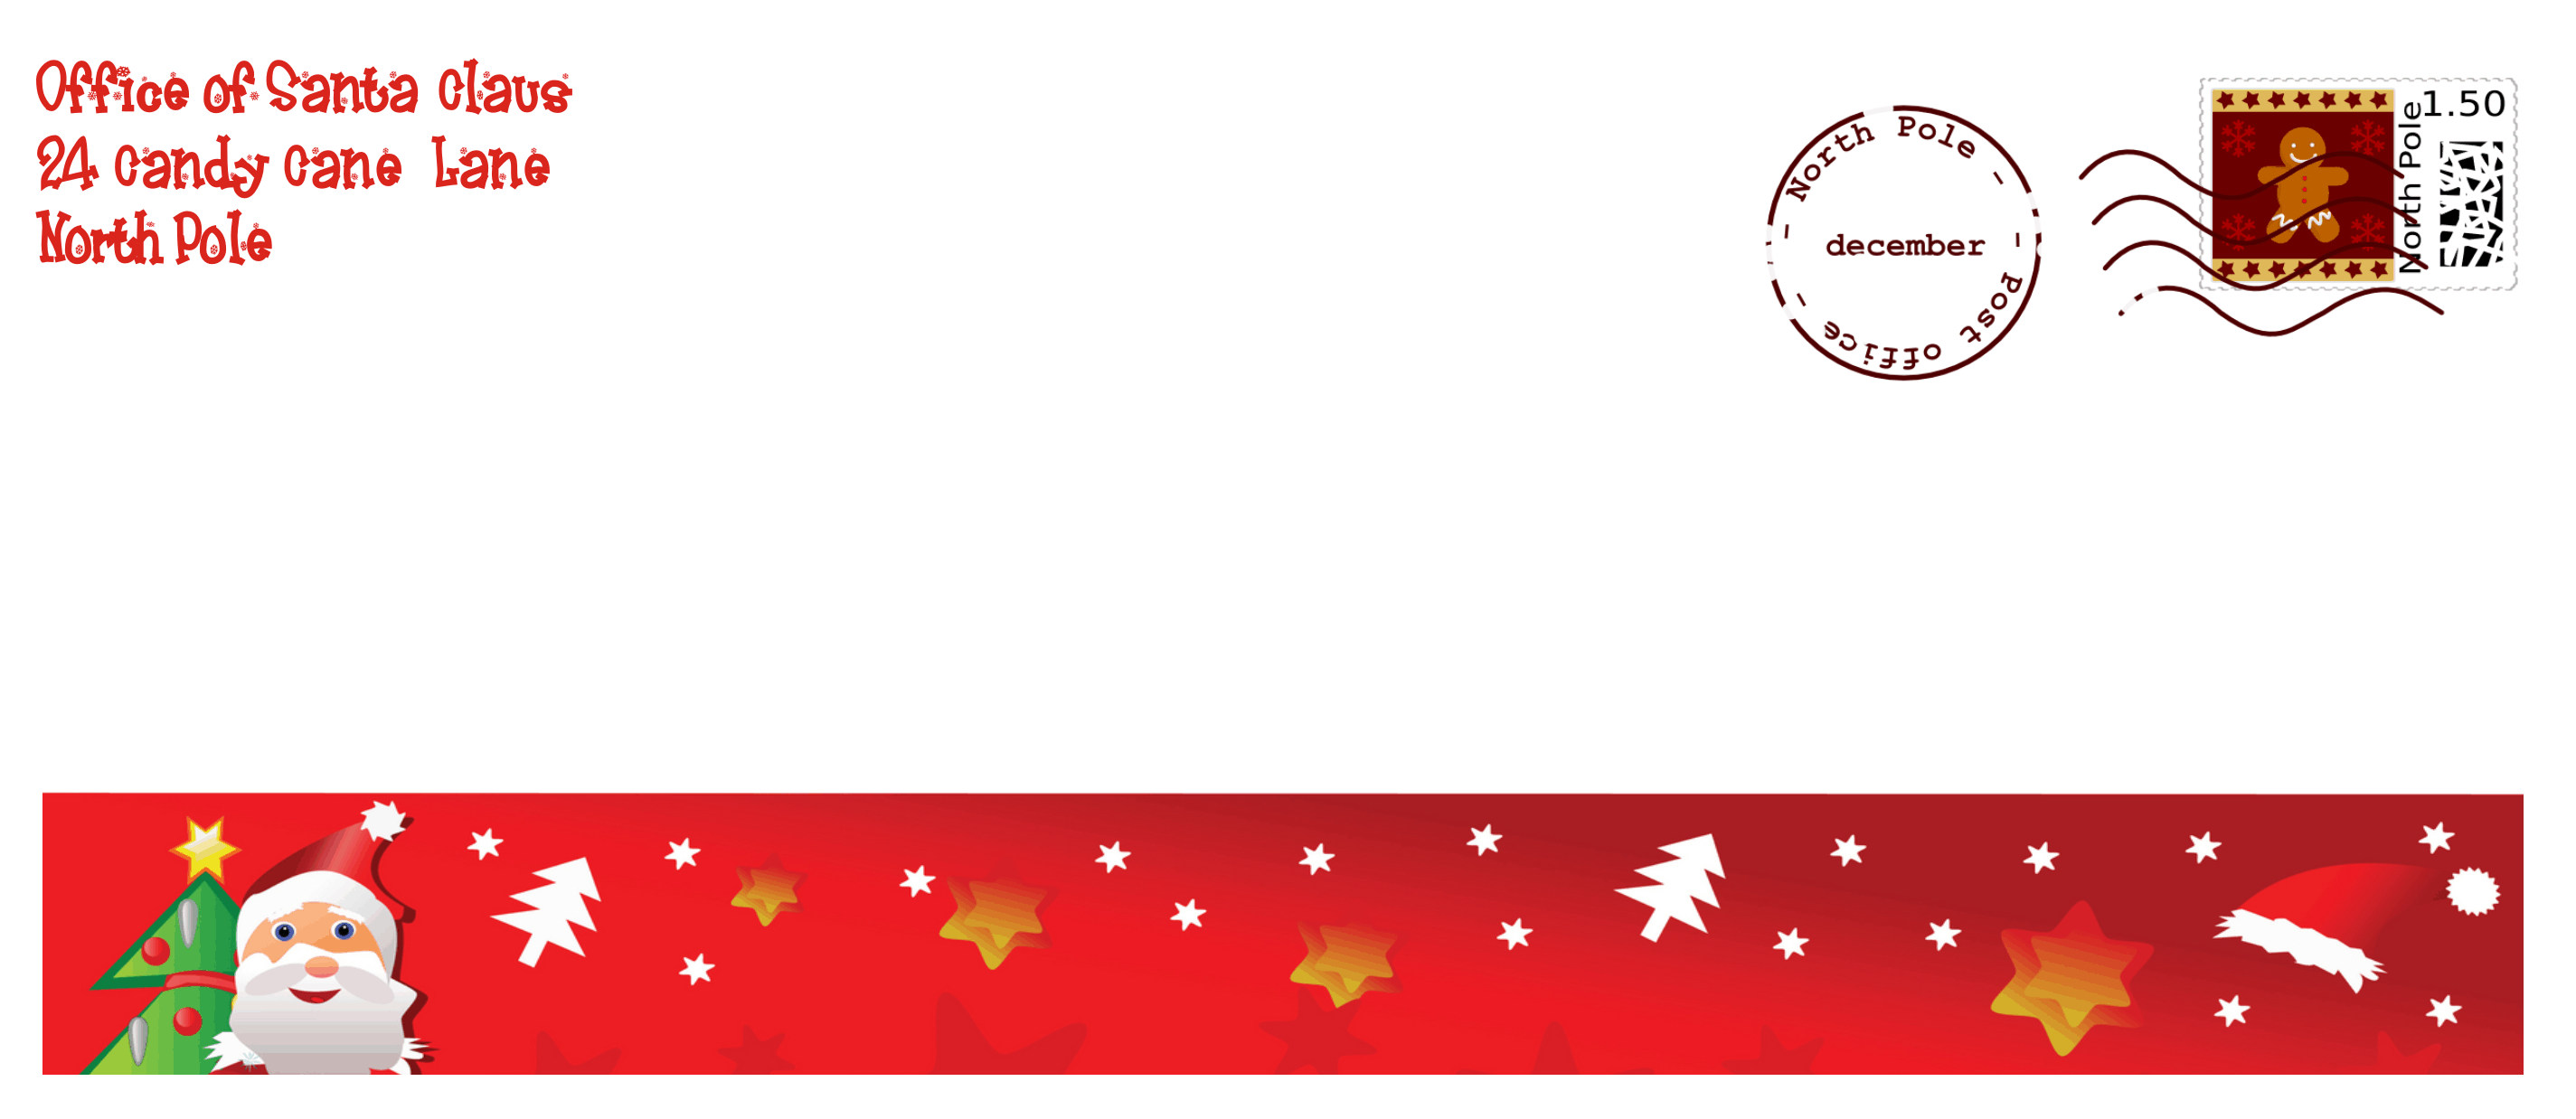 Free Santa Envelope Template | Search Results | Calendar 2015